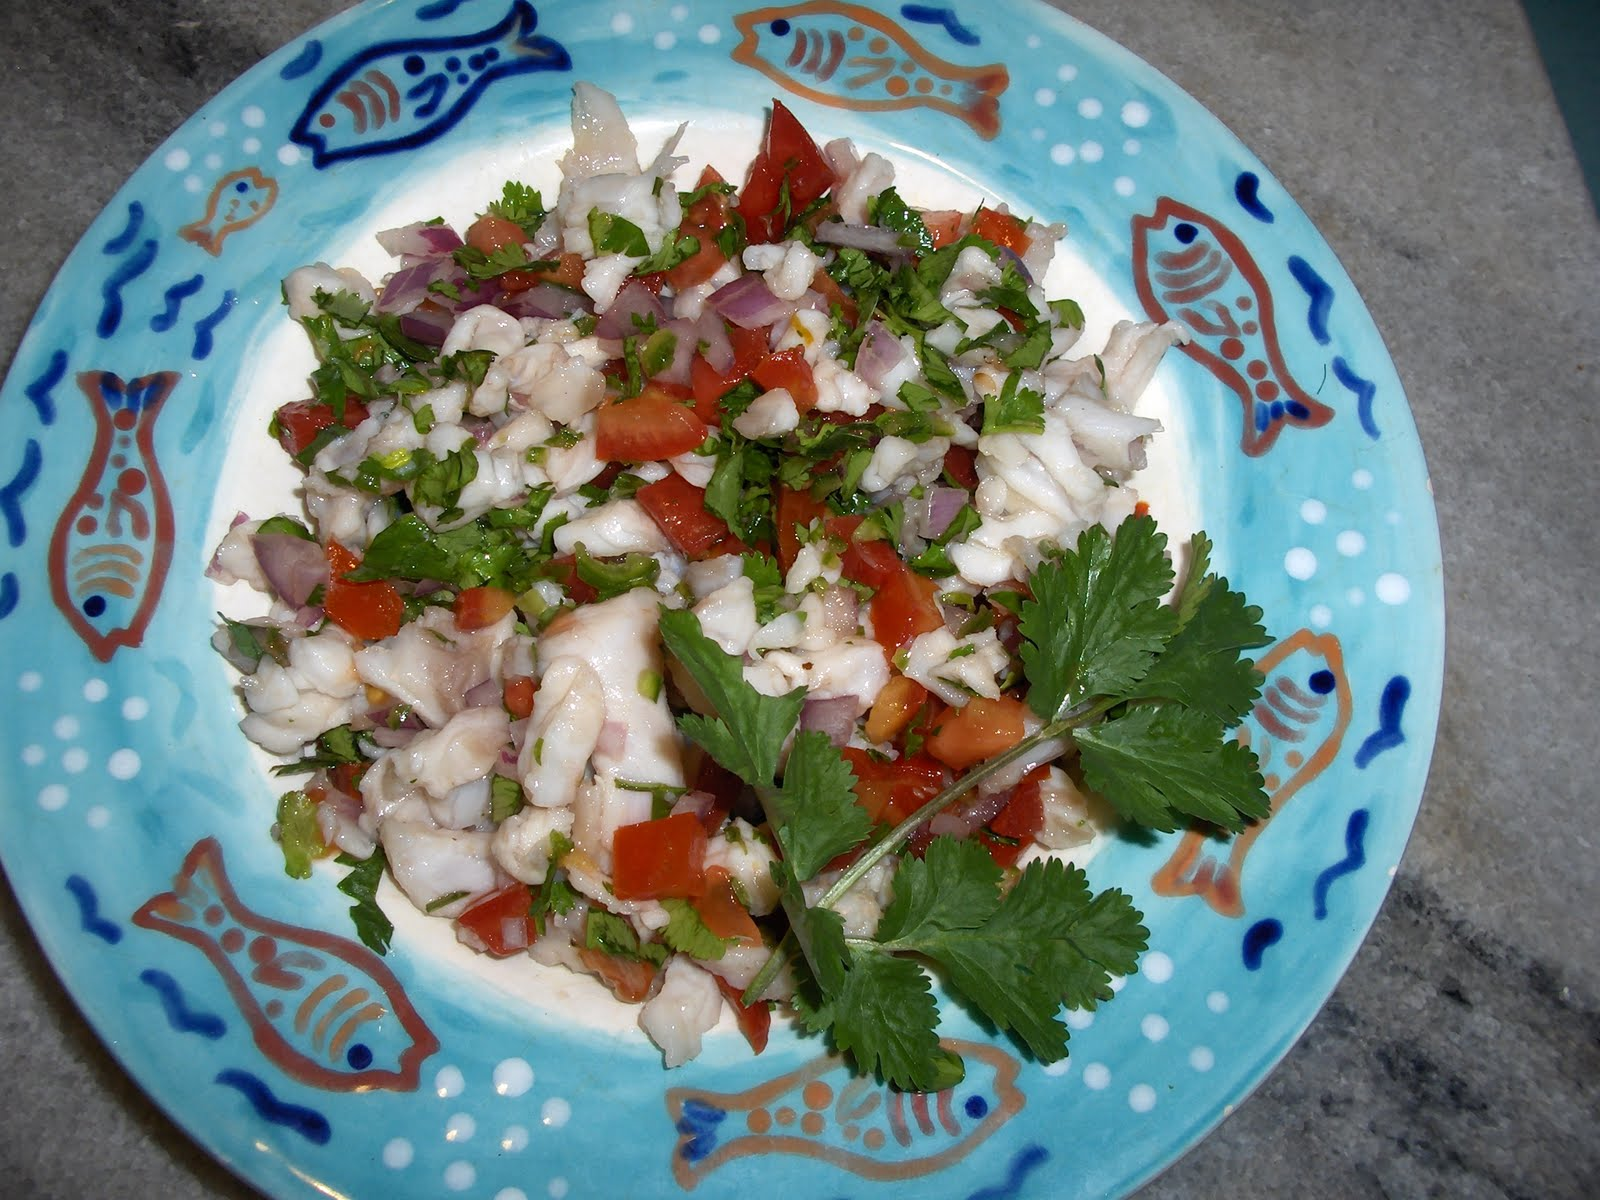 Ceviche cooking in mexico for Shrimp and fish ceviche